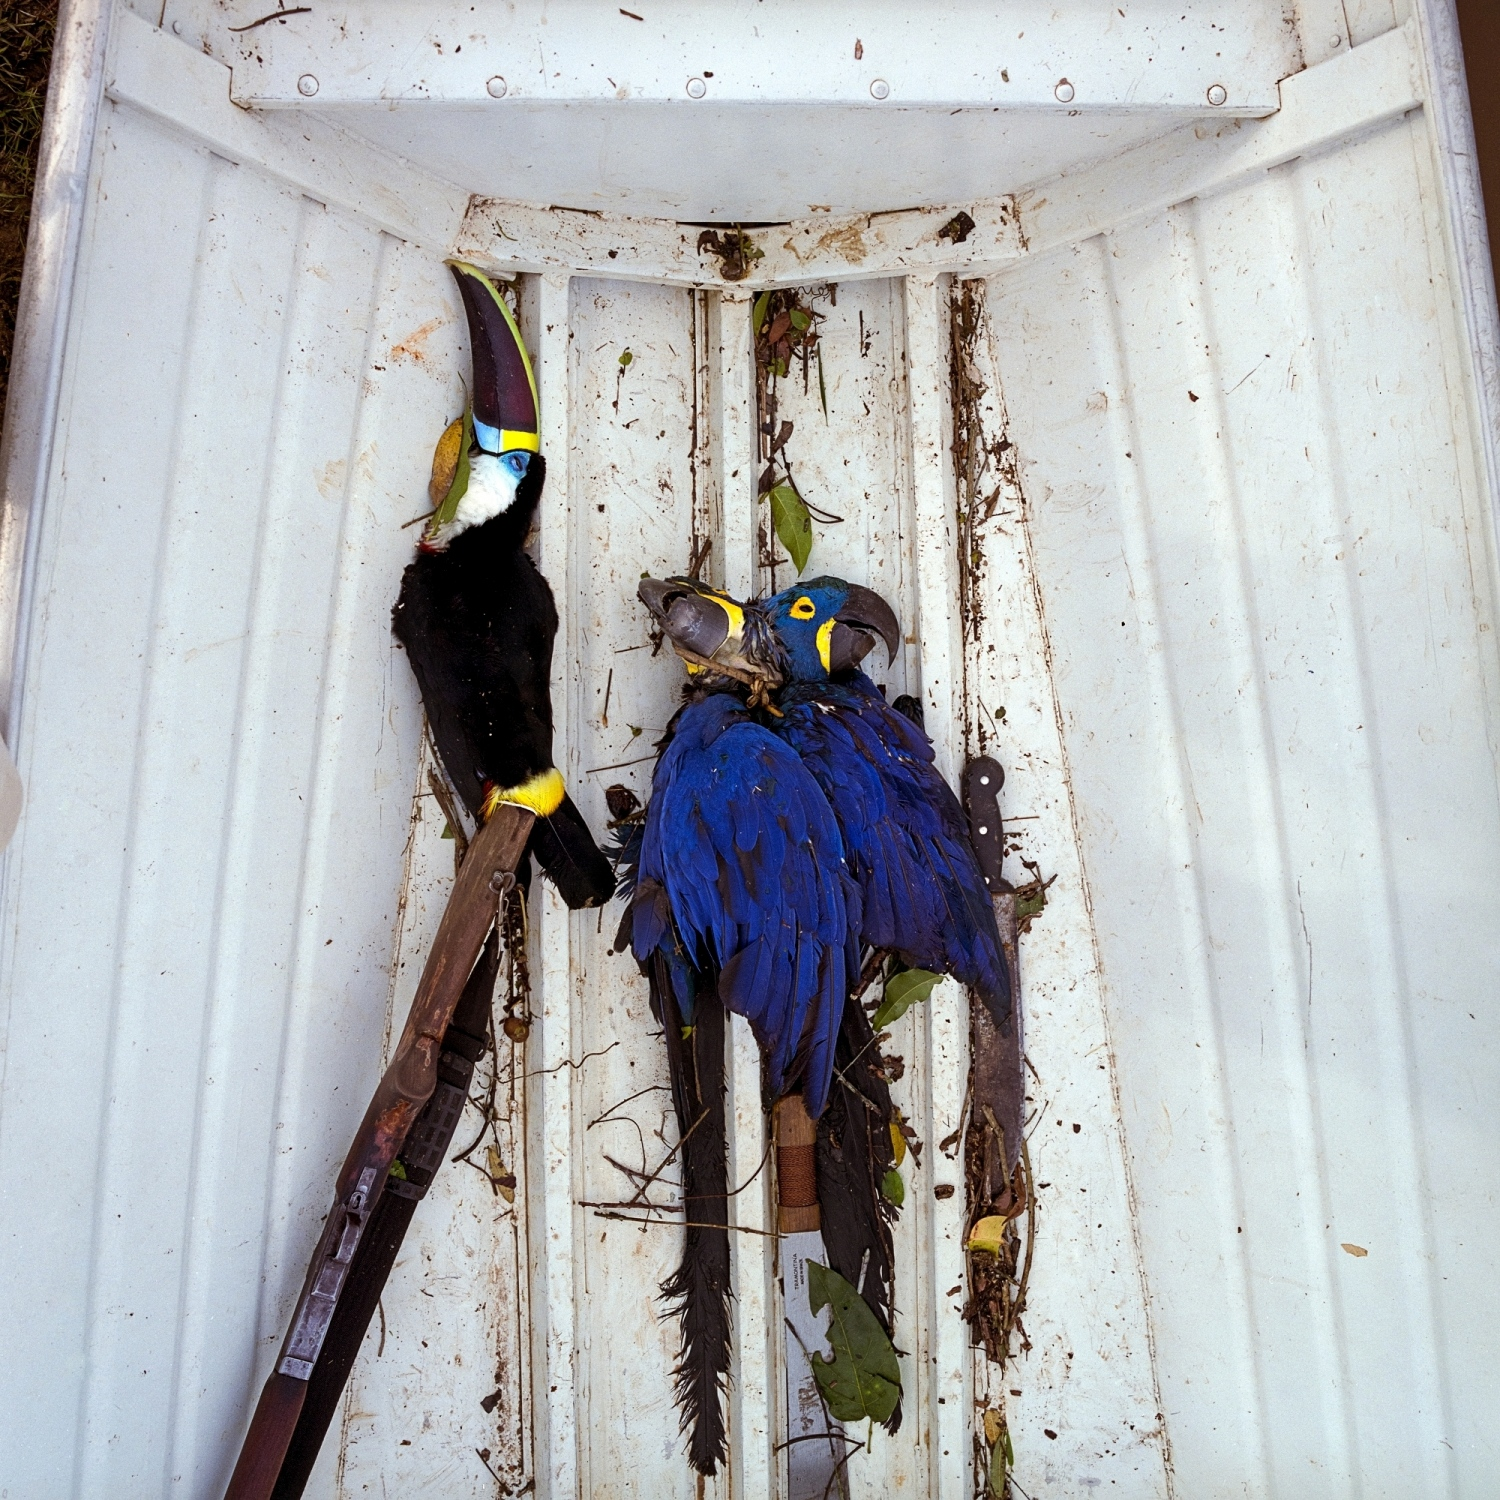 2016. Birds killed for their decorative feathers and meat by the Arawéte tribe on the Xingu River upstream from the Belo Monte Dam. The Arawéte are a hunter-gatherer tribe numbering around 400 people. Sustained contact was established in the late 1970s after their land was opened up by the construction of the TransAmazon Highway, which marked the second major expansion into the Amazon after the rubber boom and resulted in the decimation of their population by a third.  The emergency plan instated by Norte Enegria, the constorium building the Belo Monte Dam, during the early stages of construction between 2011-2013 gave 30,000 reais about $10,000 per village per month. Their subsistence lifestyle was quickly corrupted by the money with easy access to processed foods which severely damaged their health and overall cultural wellbeing. Many considered the action a form of ethinocide. /Aaron Vincent Elkaim